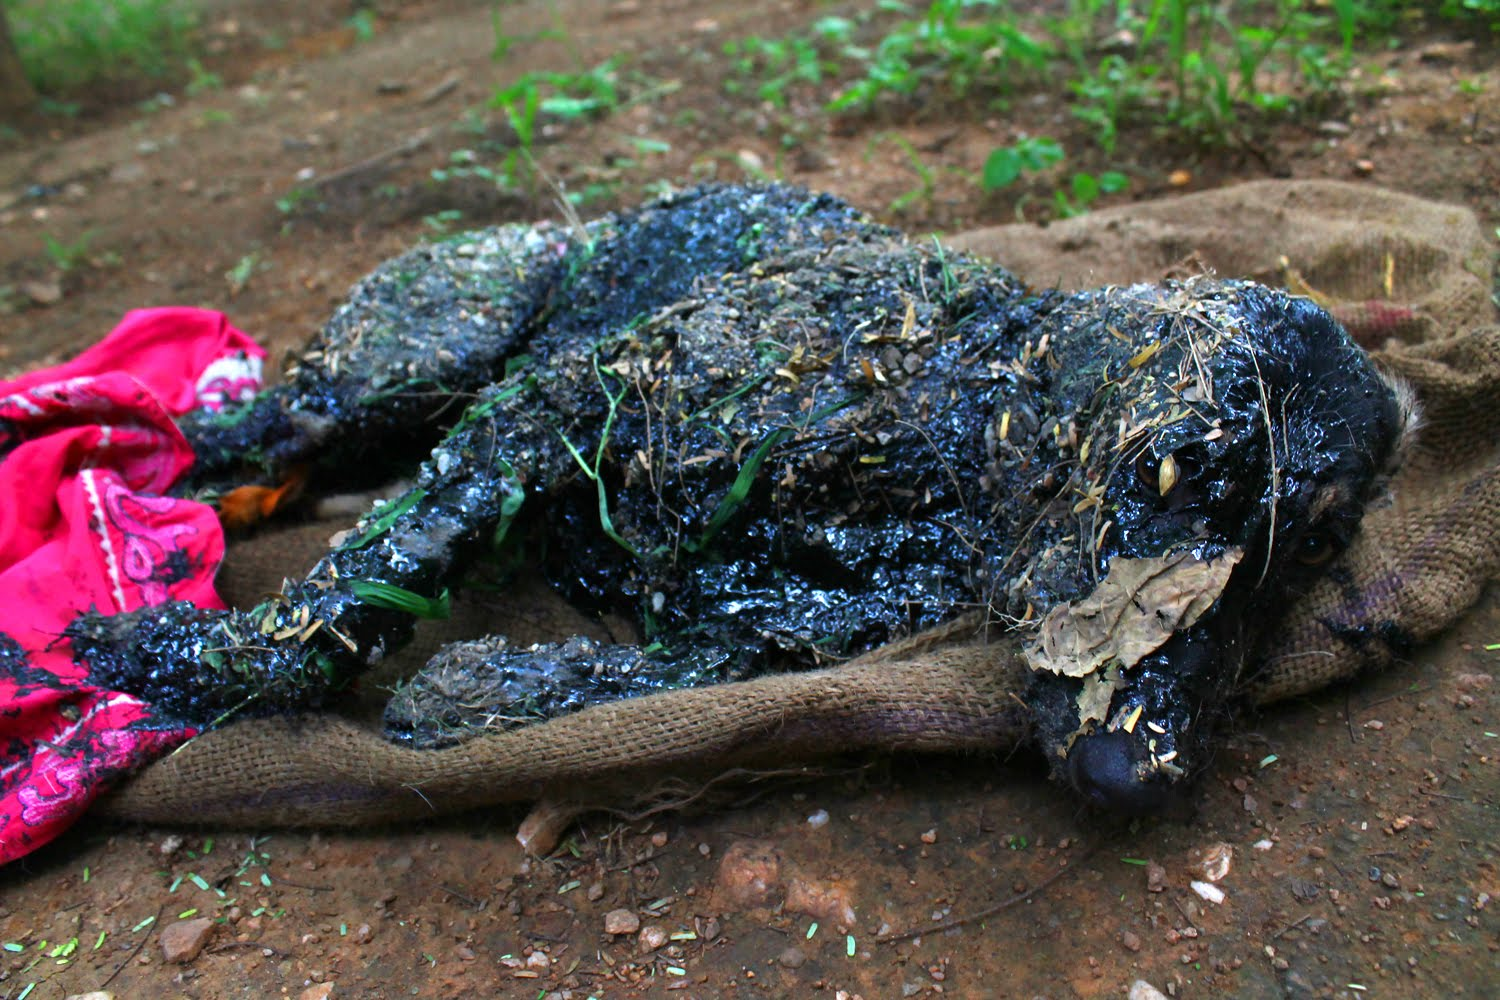 Covered in tar and unable to move, this amazing rescue saved this dog's life